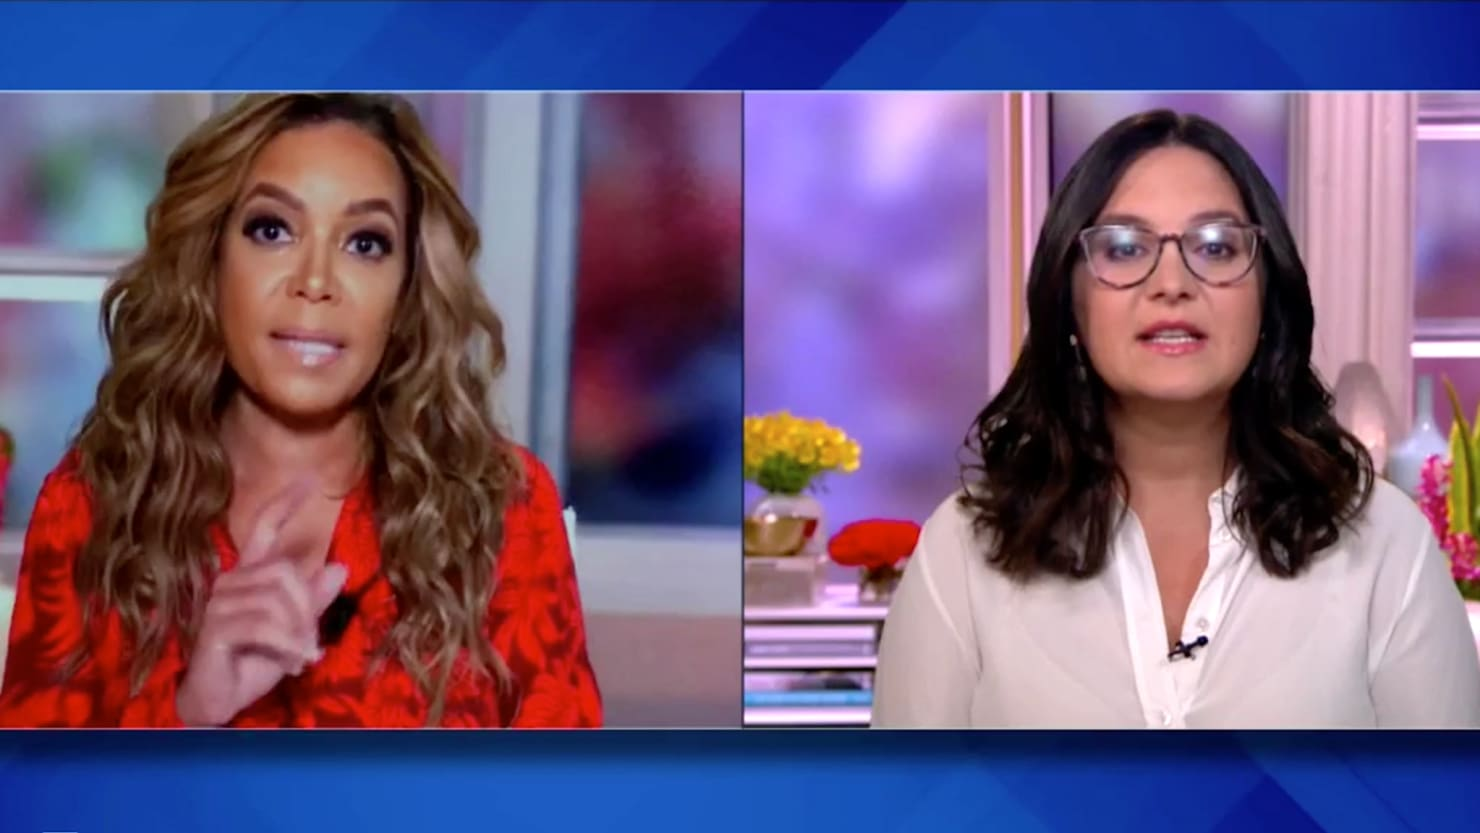 'The View's' Sunny Hostin Schools Bari Weiss on 'Court Packing'